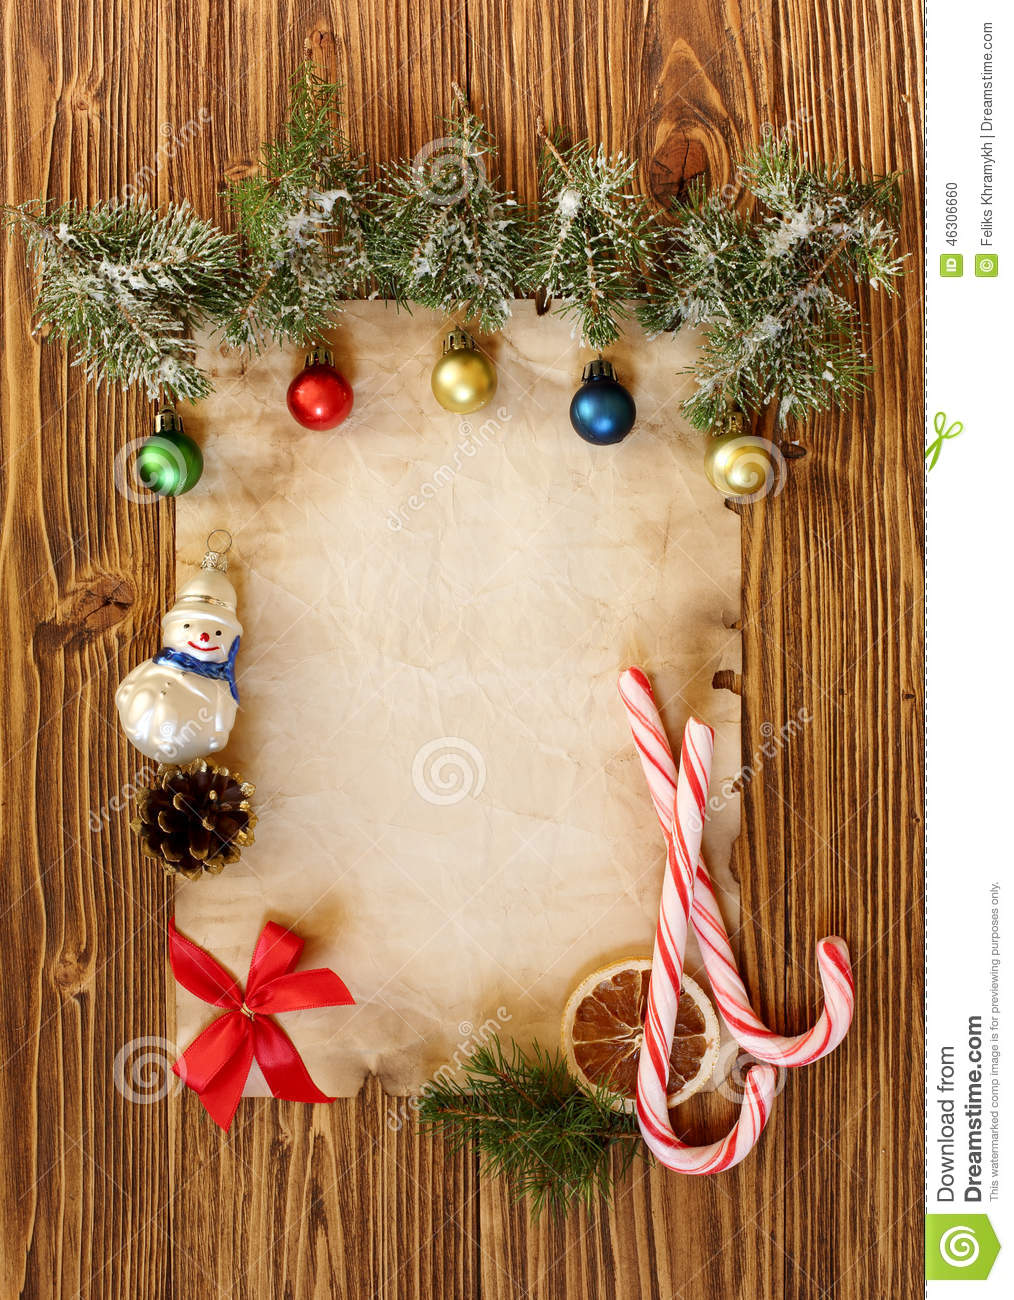 Christmas Decorations On The Old Sheet Of Paper On A Wooden